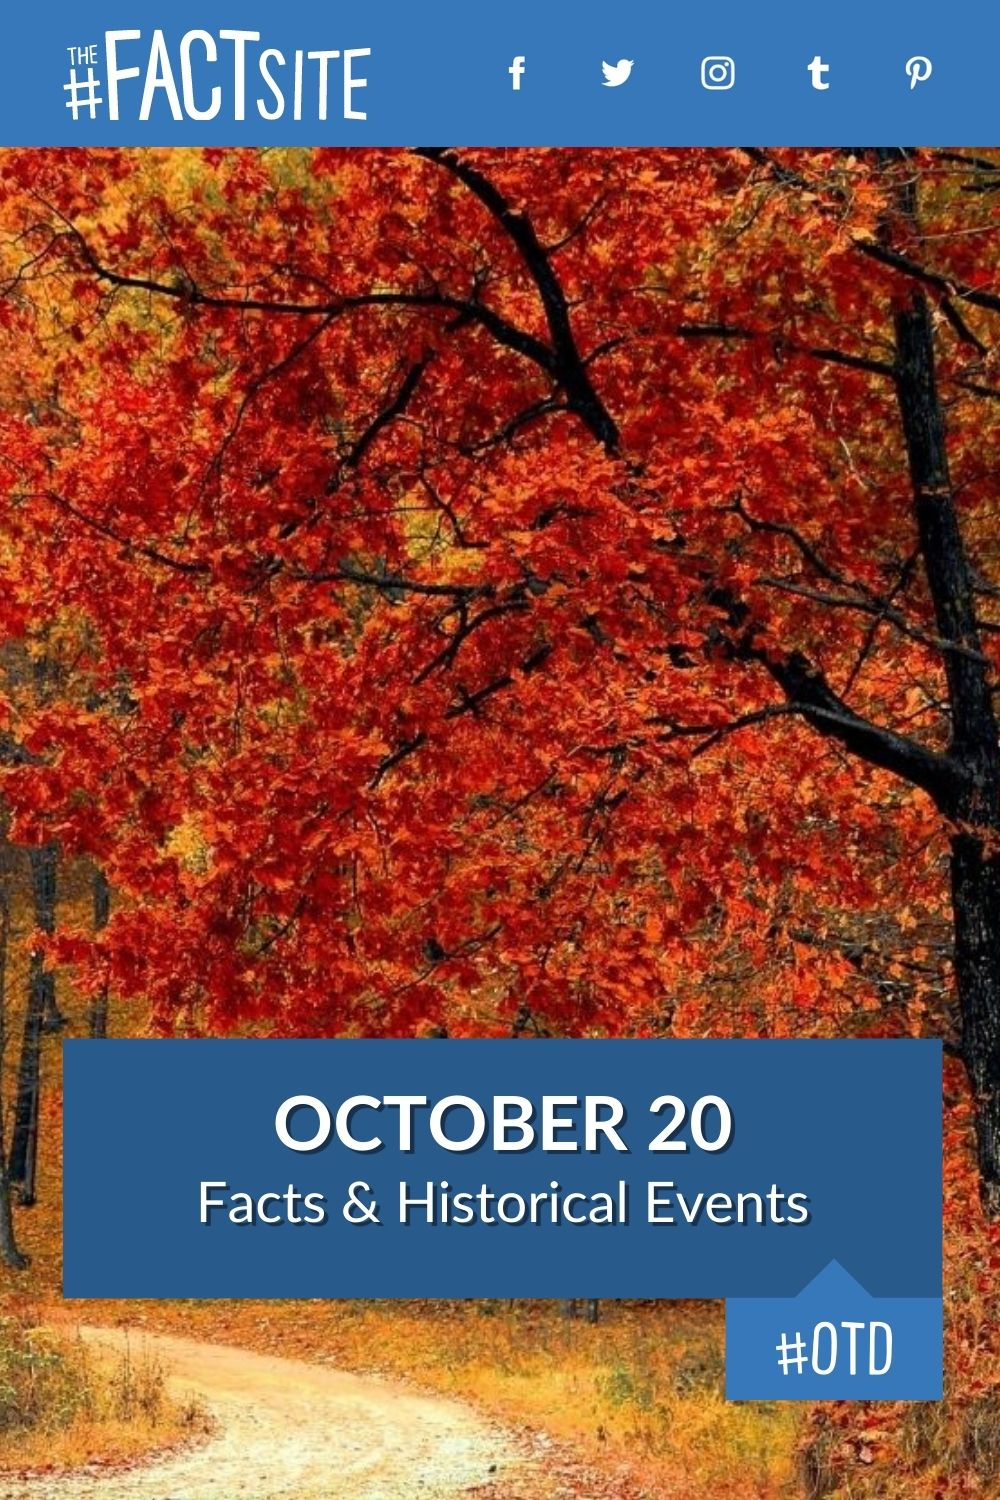 Facts & Historic Events That Happened on October 20